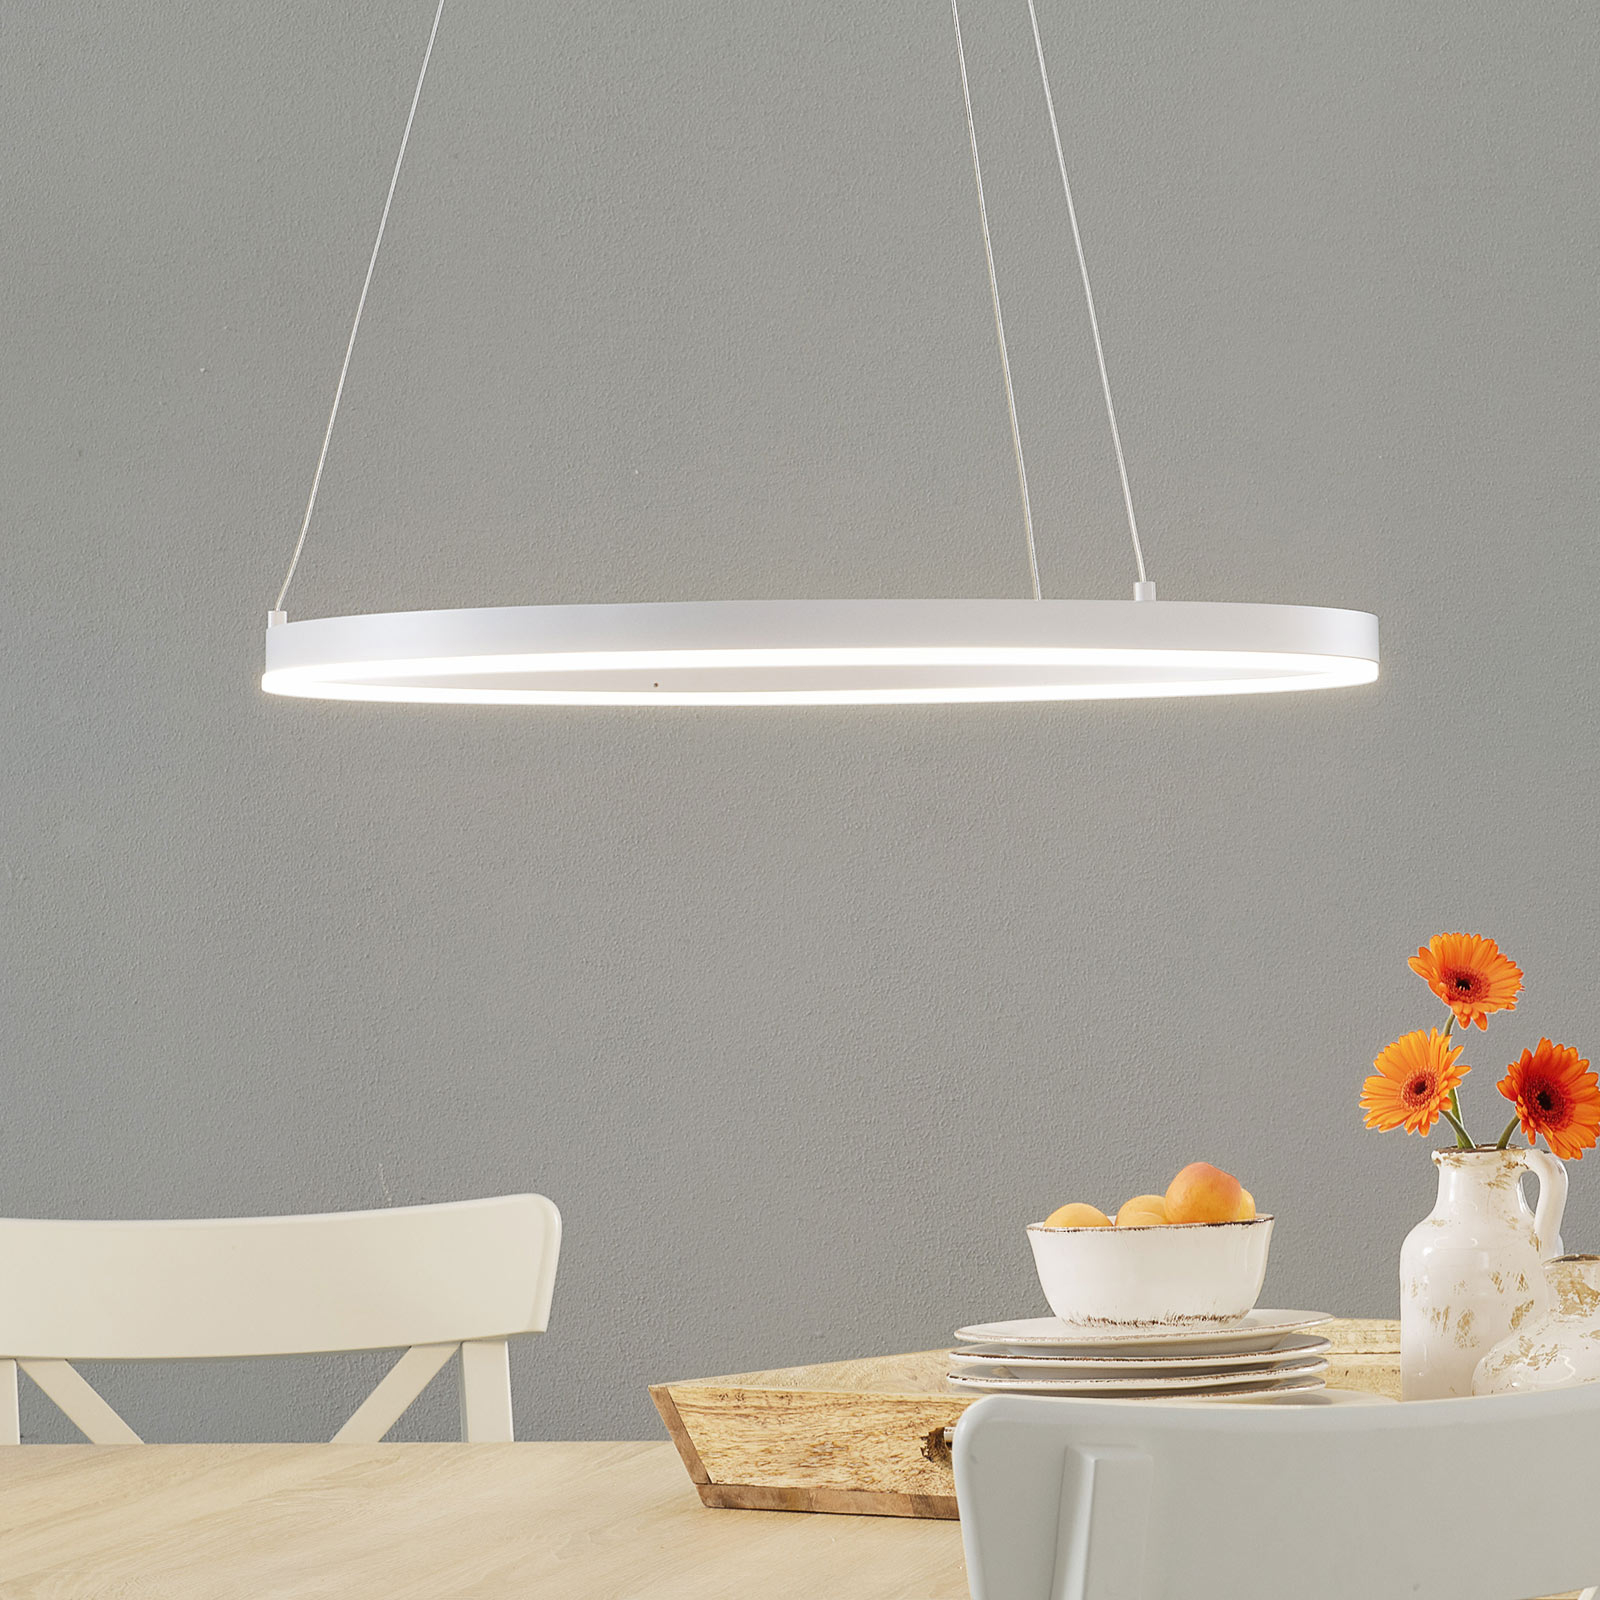 Suspension LED Vaasa, dimmable, blanche